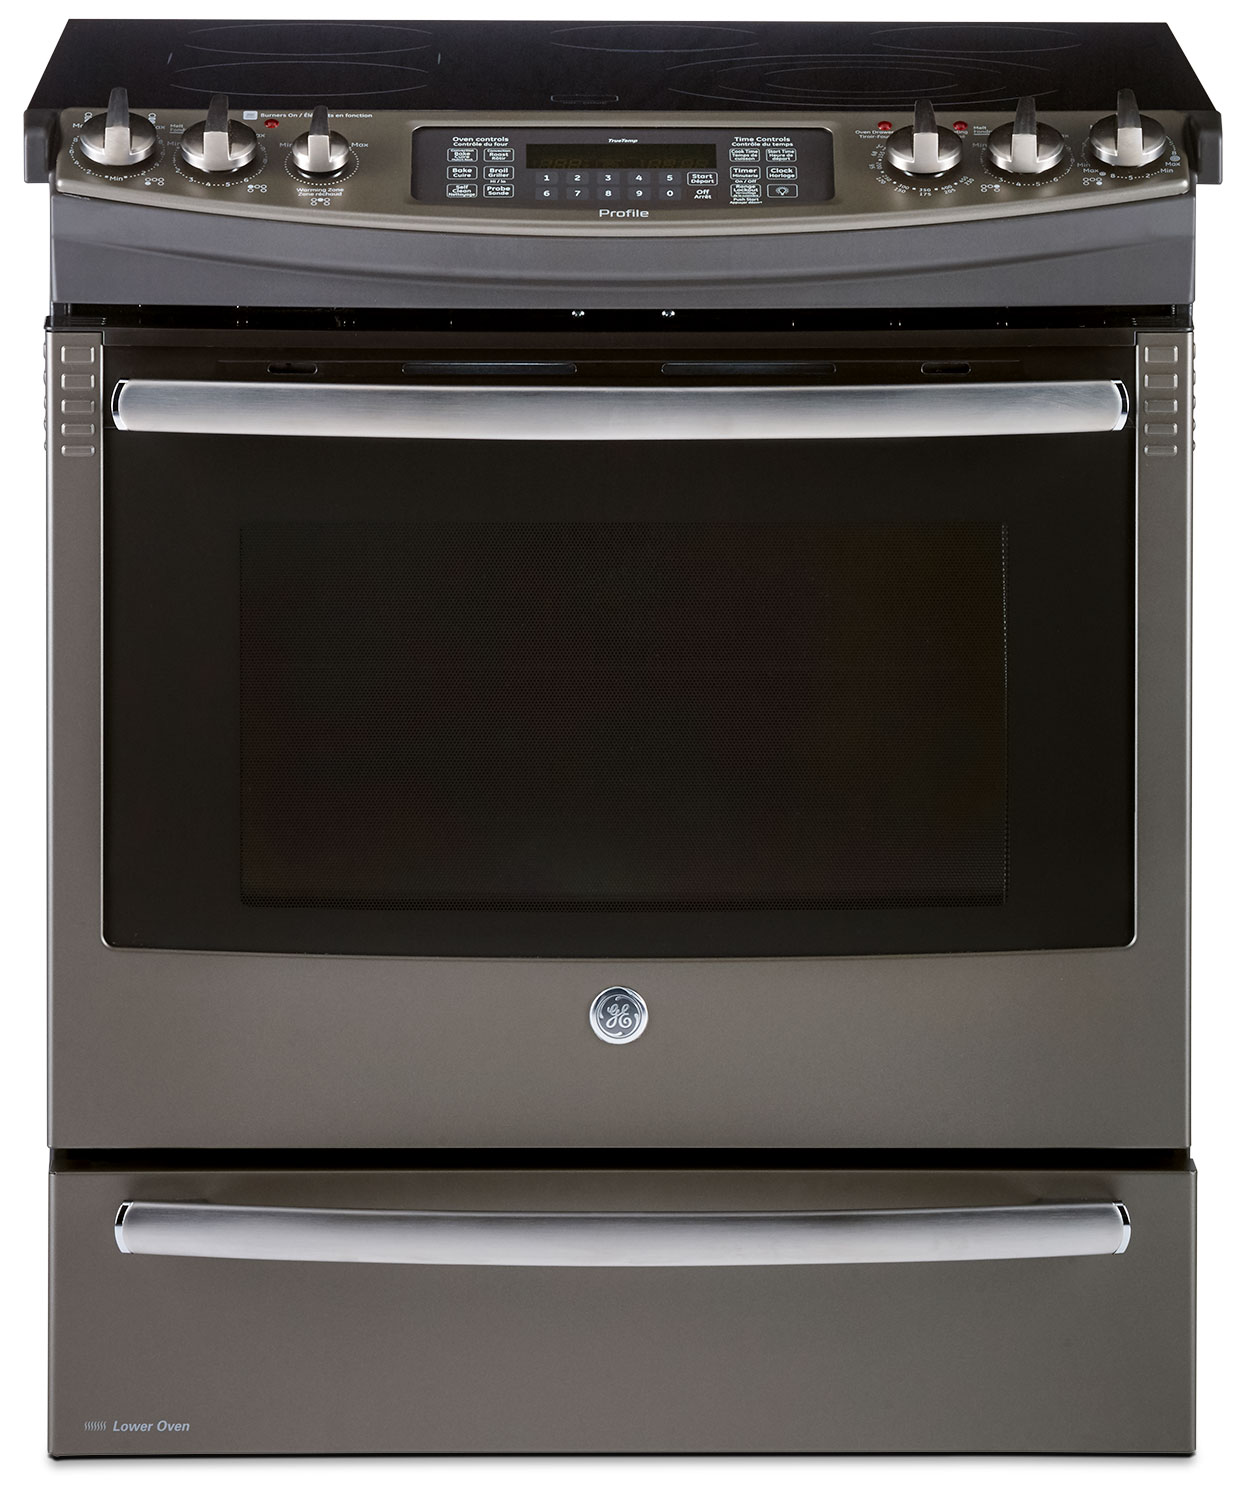 GE 6.6 Cu. Ft. Slide-In Electric Range with Baking Drawer – PCS940EJES